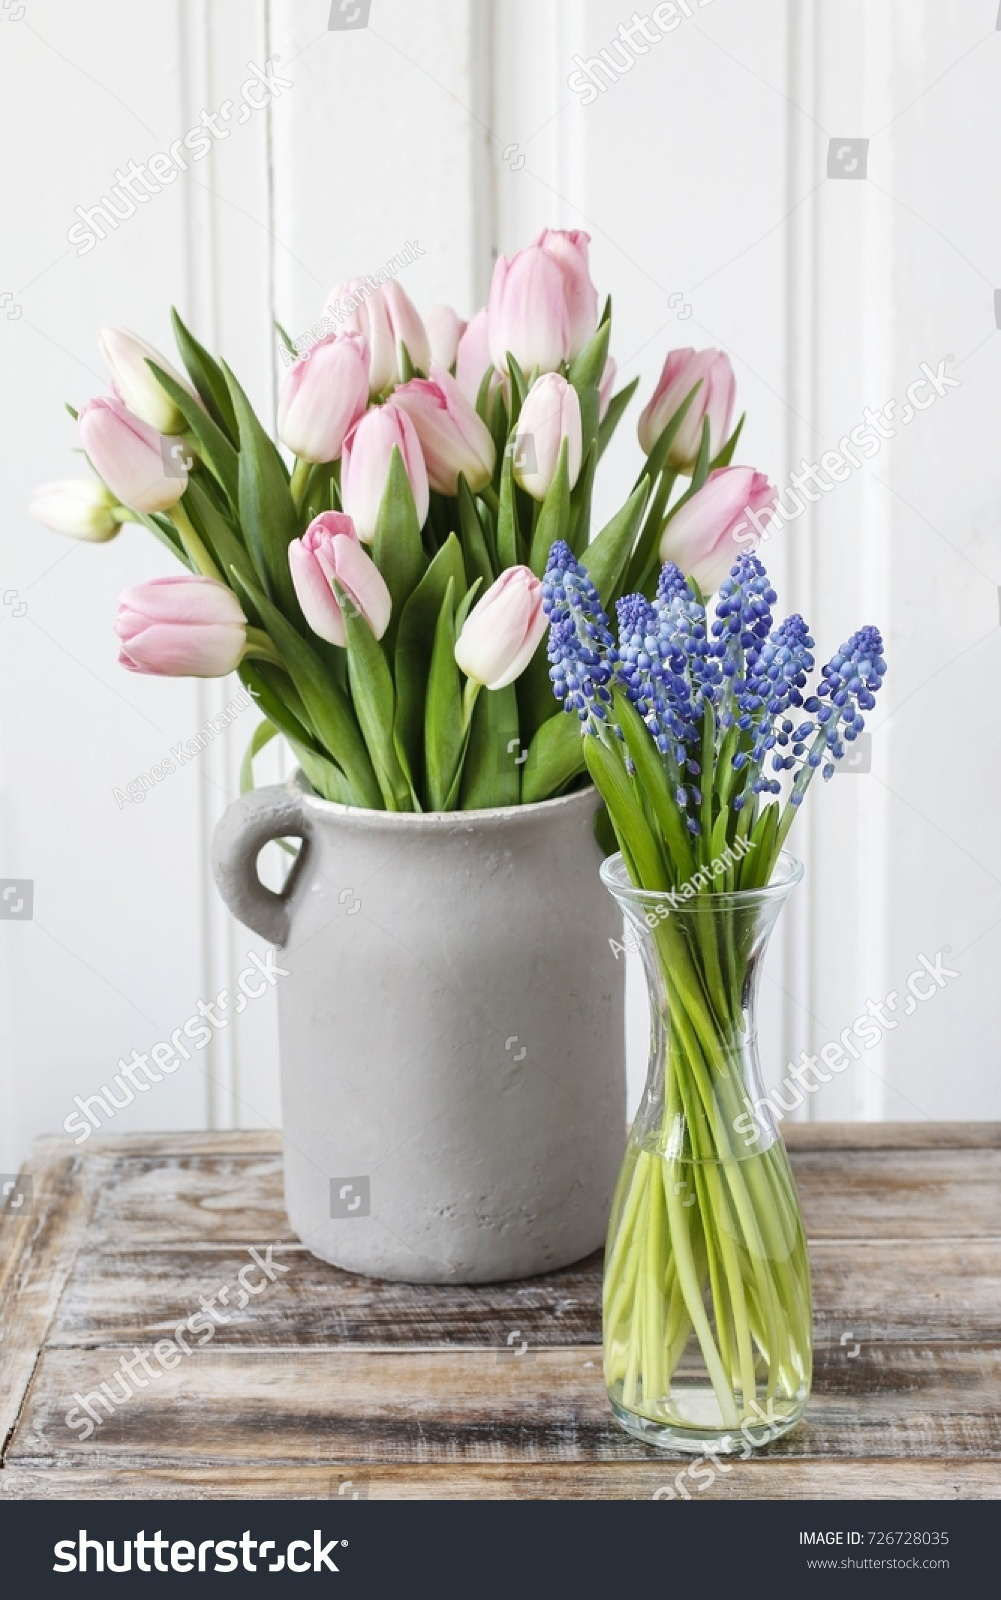 Hyacinths and Daffodils in flower pots on light background   EZ Canvas